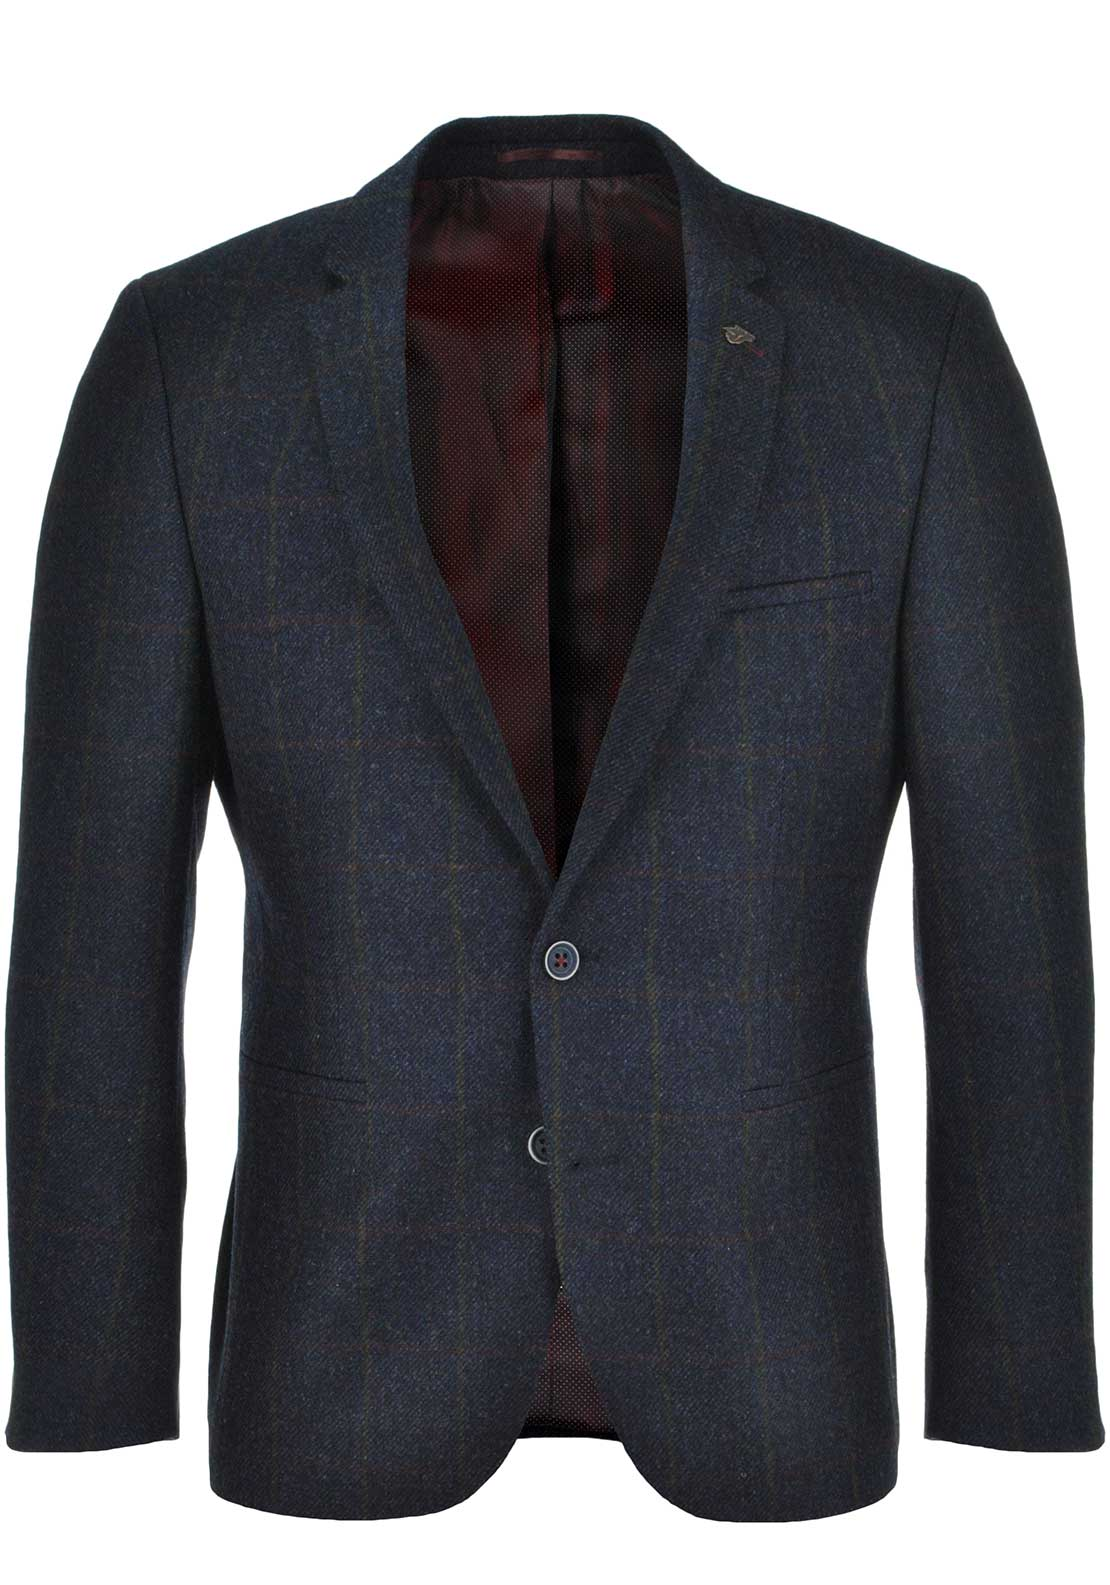 Remus Uomo Mens Wool Calzo Two Button Check Blazer, Navy